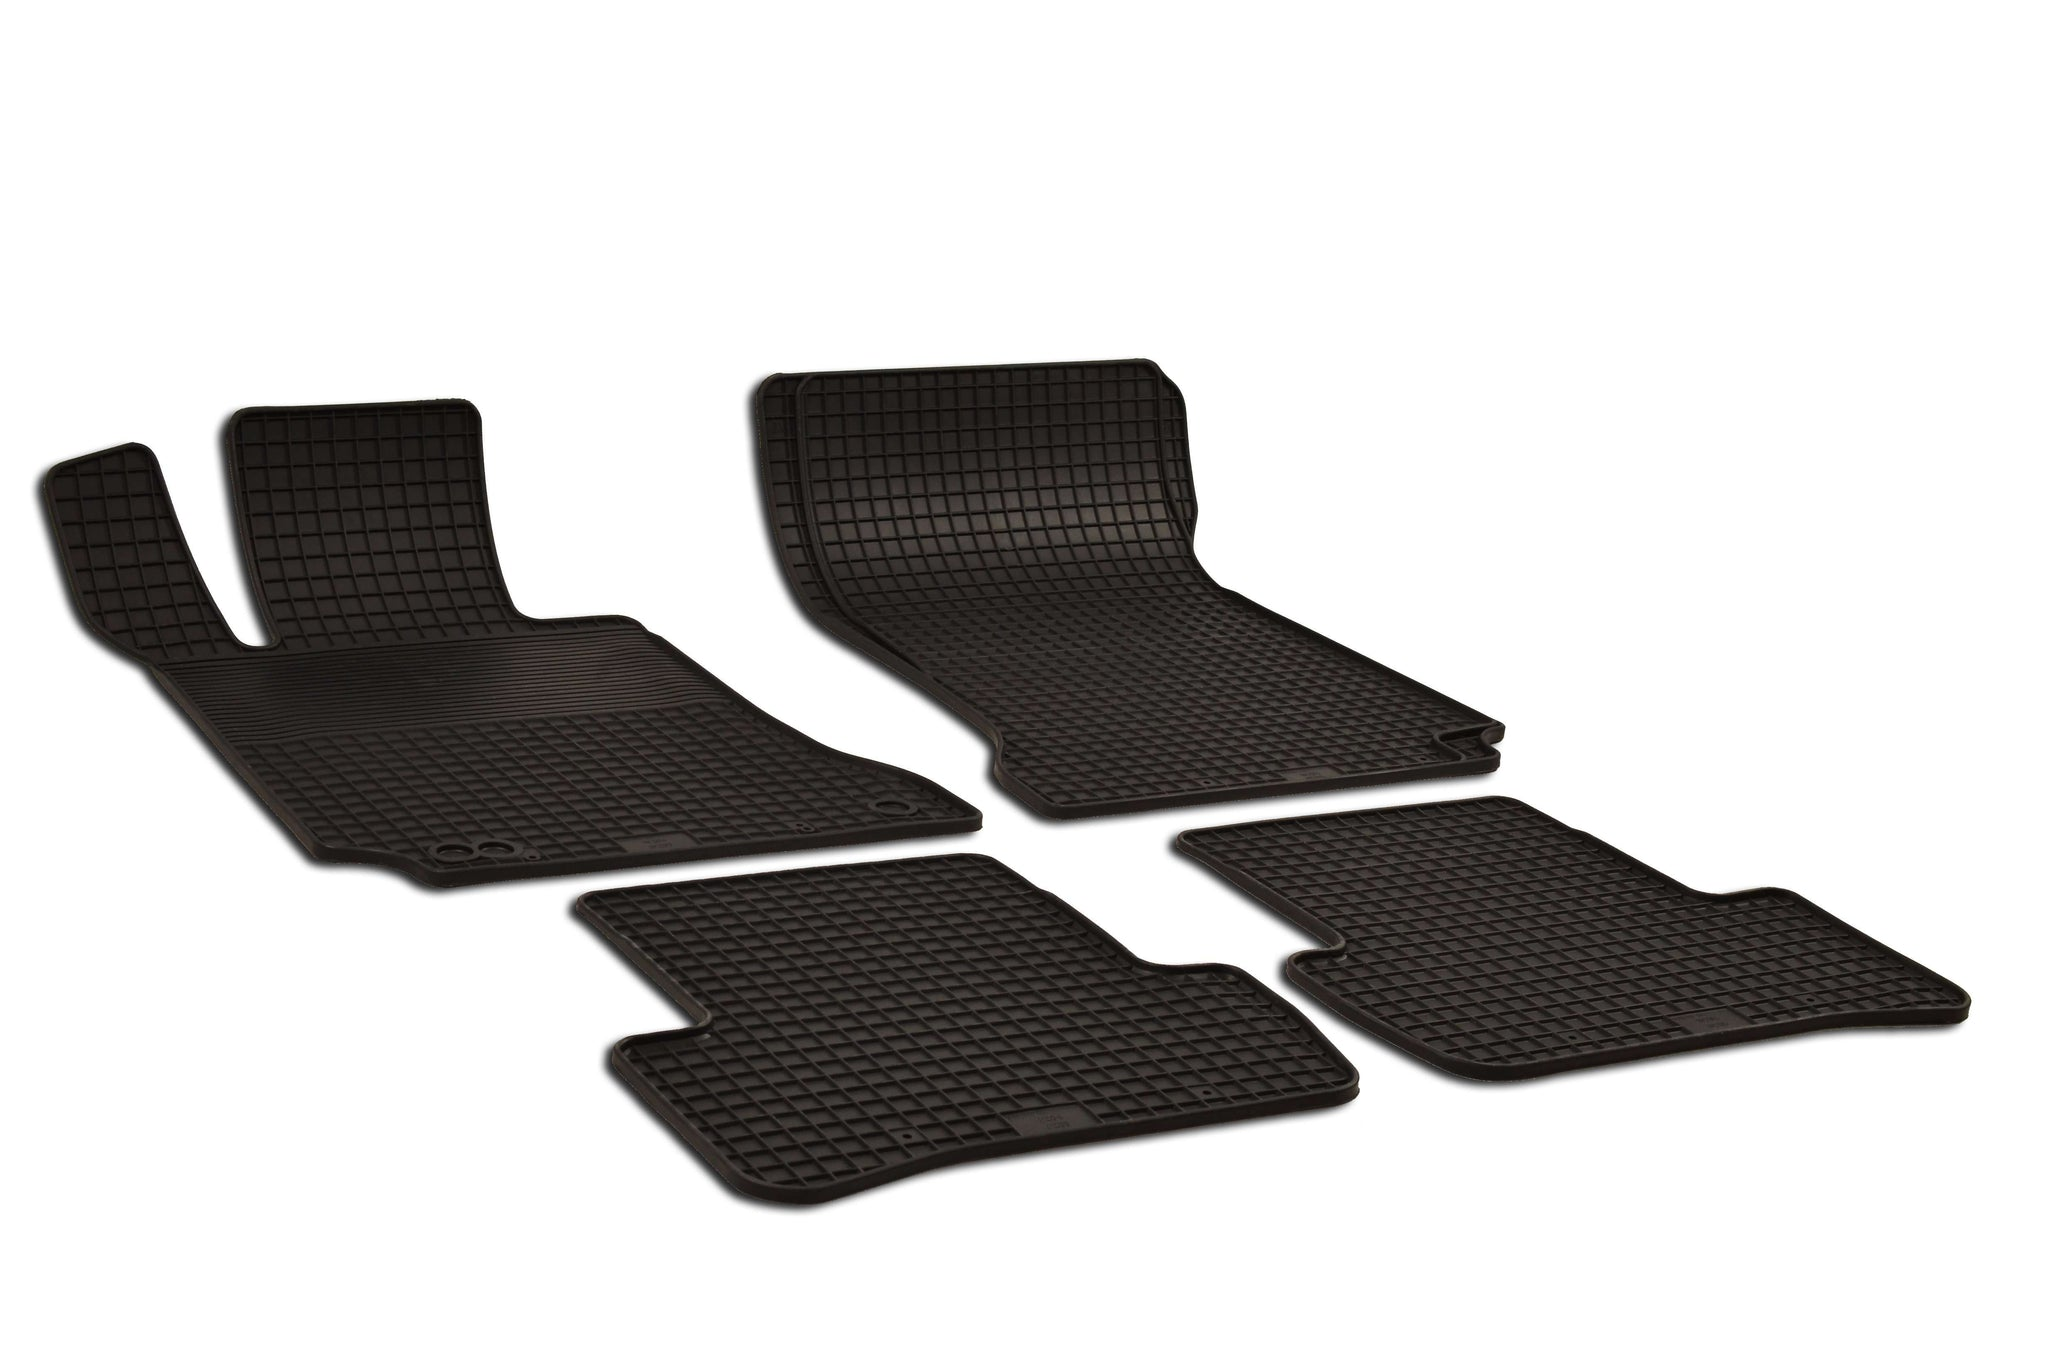 Mercedes C250 2012 Sedan Base 204.085 Set of 4 Black Rubber OE Fit All Weather Car Floor Mats